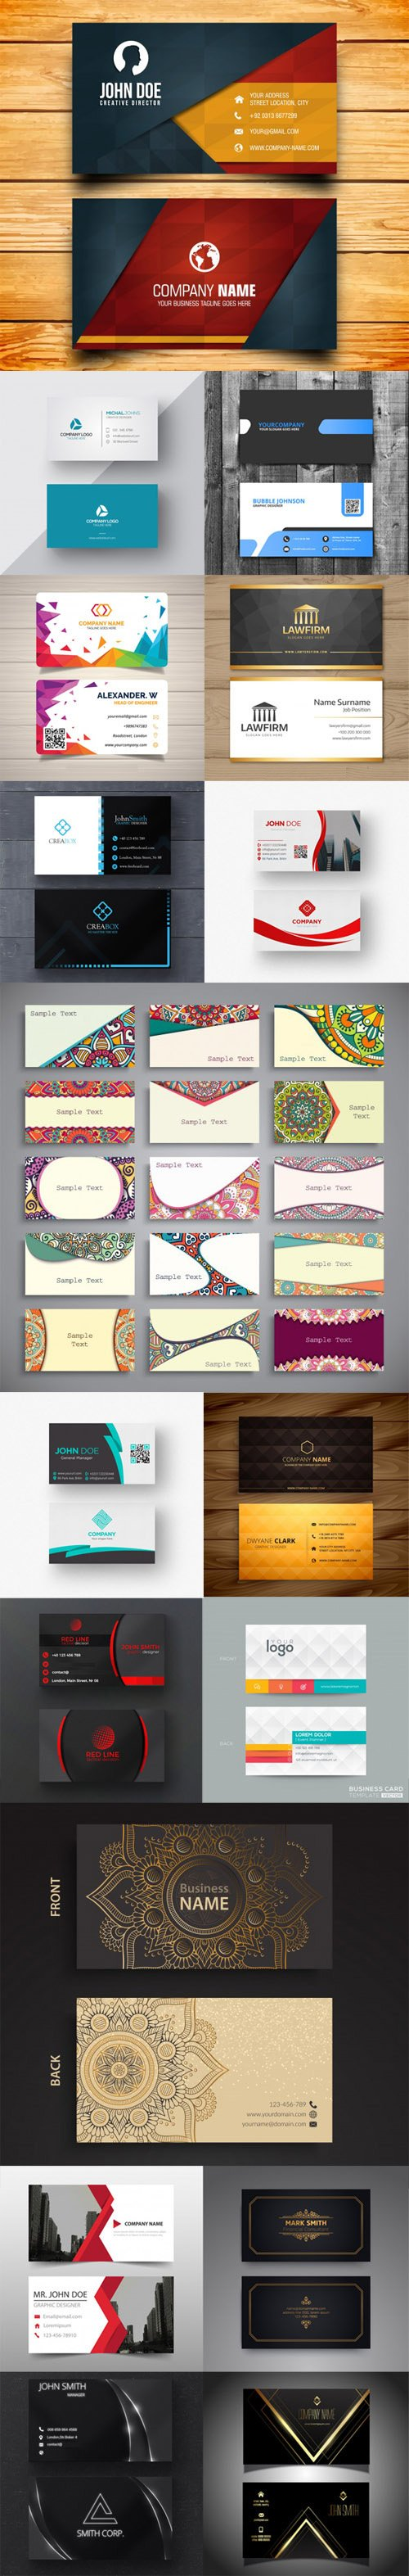 30 Modern Business Cards Collection [Ai/EPS/PSD]